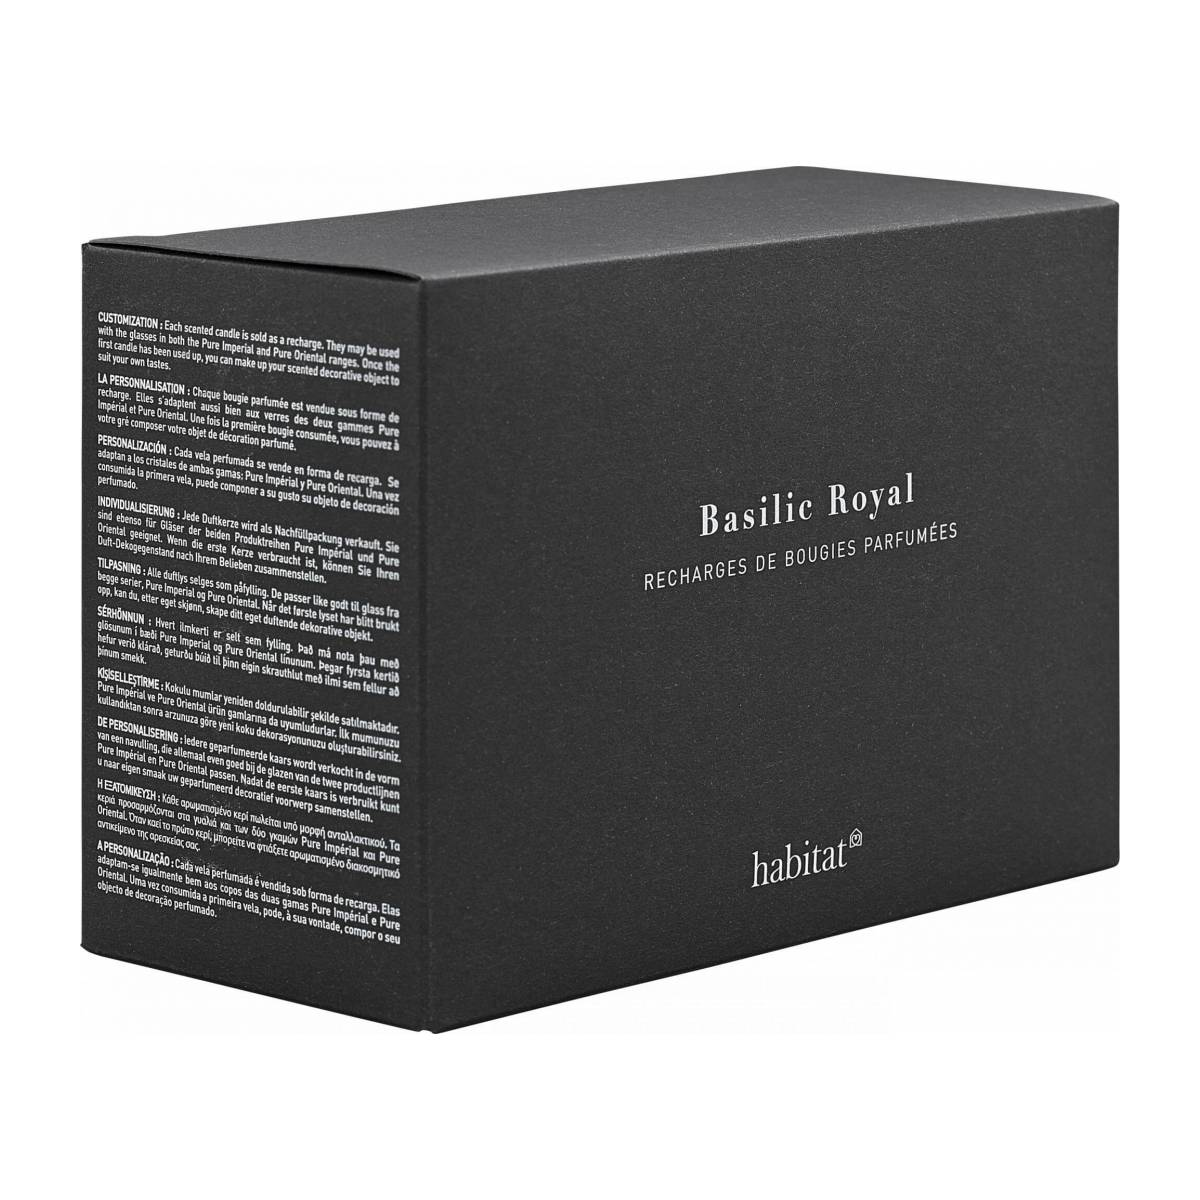 Refill for 2 medium Basil scented candles, 2 x 300 g n°4